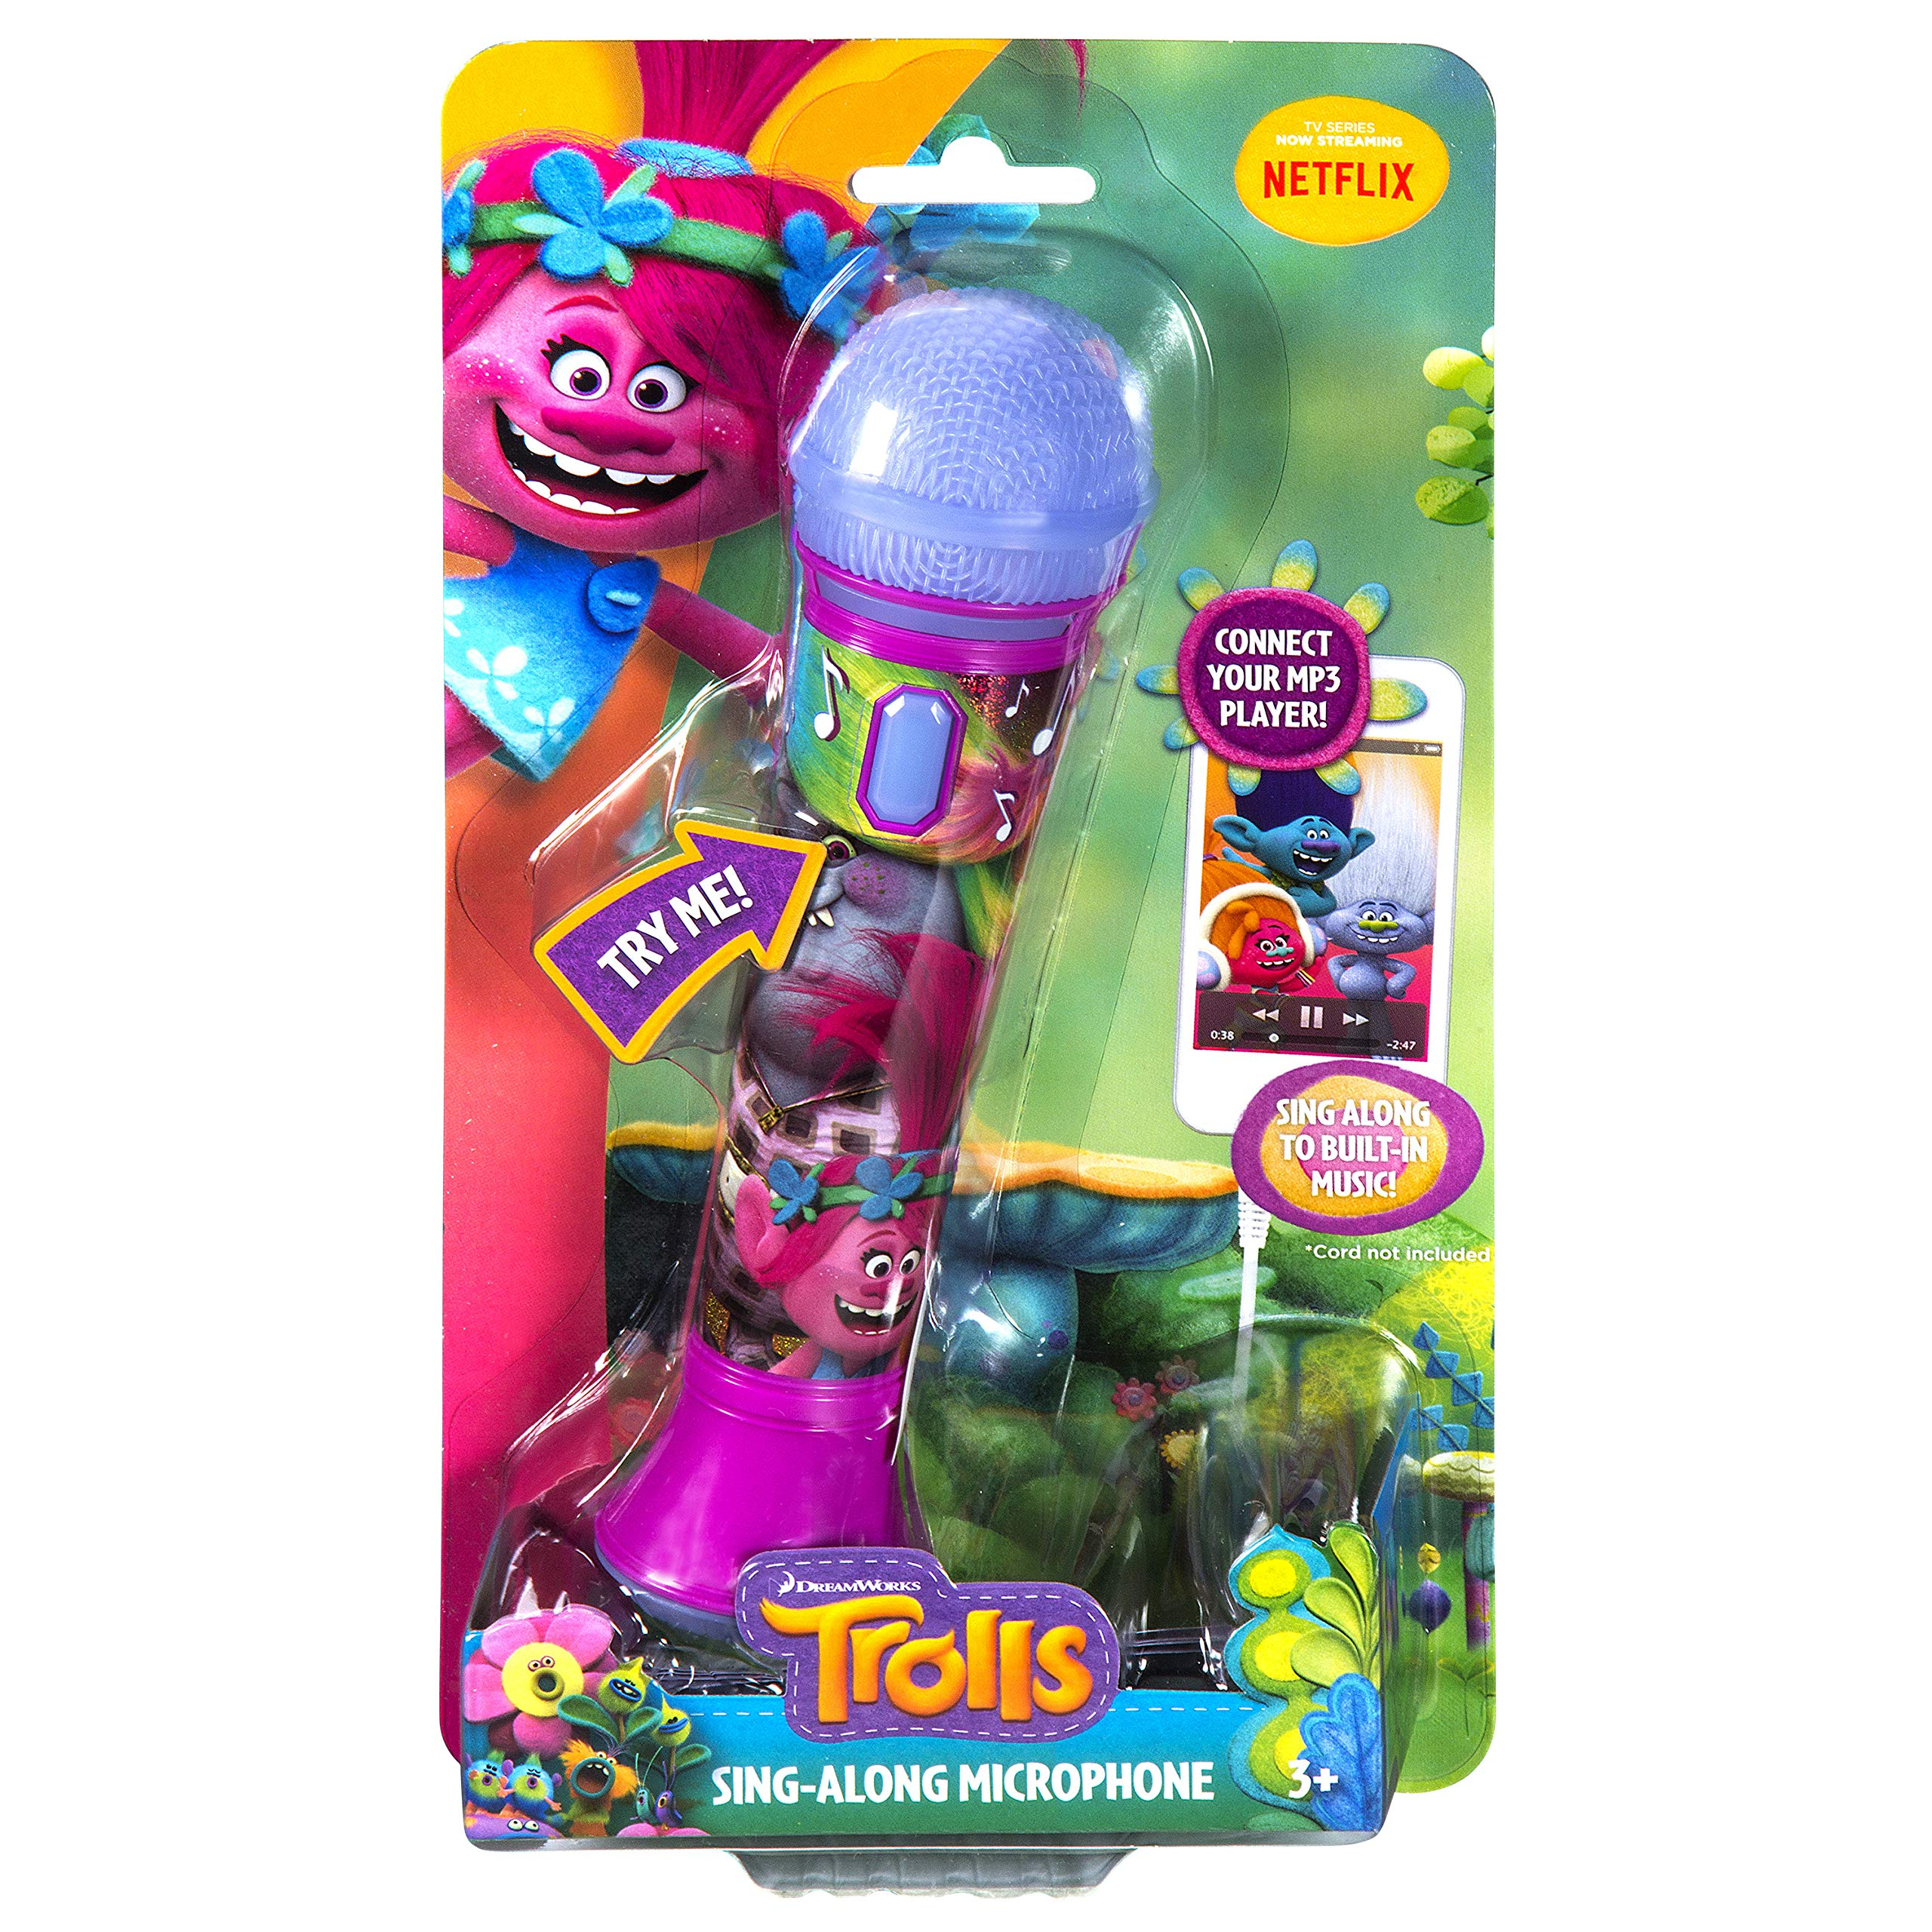 Trolls Sing Along MP3 Microphone Sing to Built in Music or Connect Your Audio Device and Sing to Whatever You Like